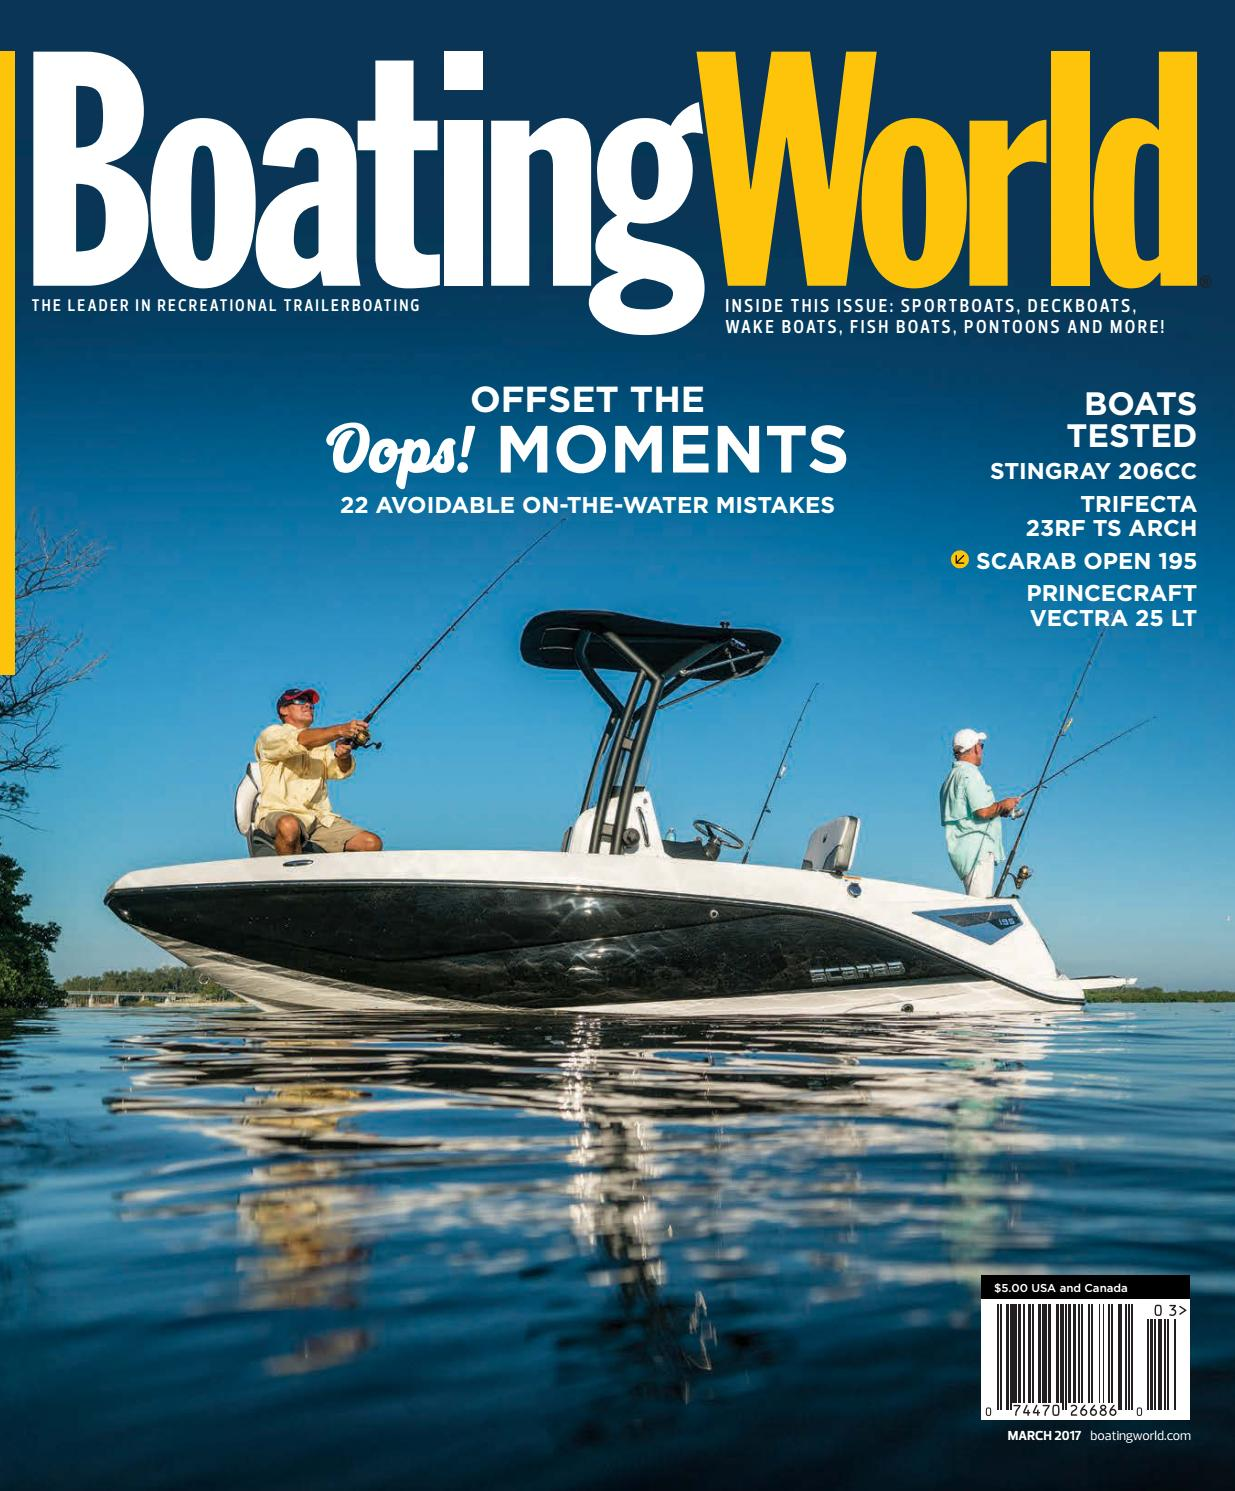 March 2017 – Boating World Magazine by Duncan McIntosh